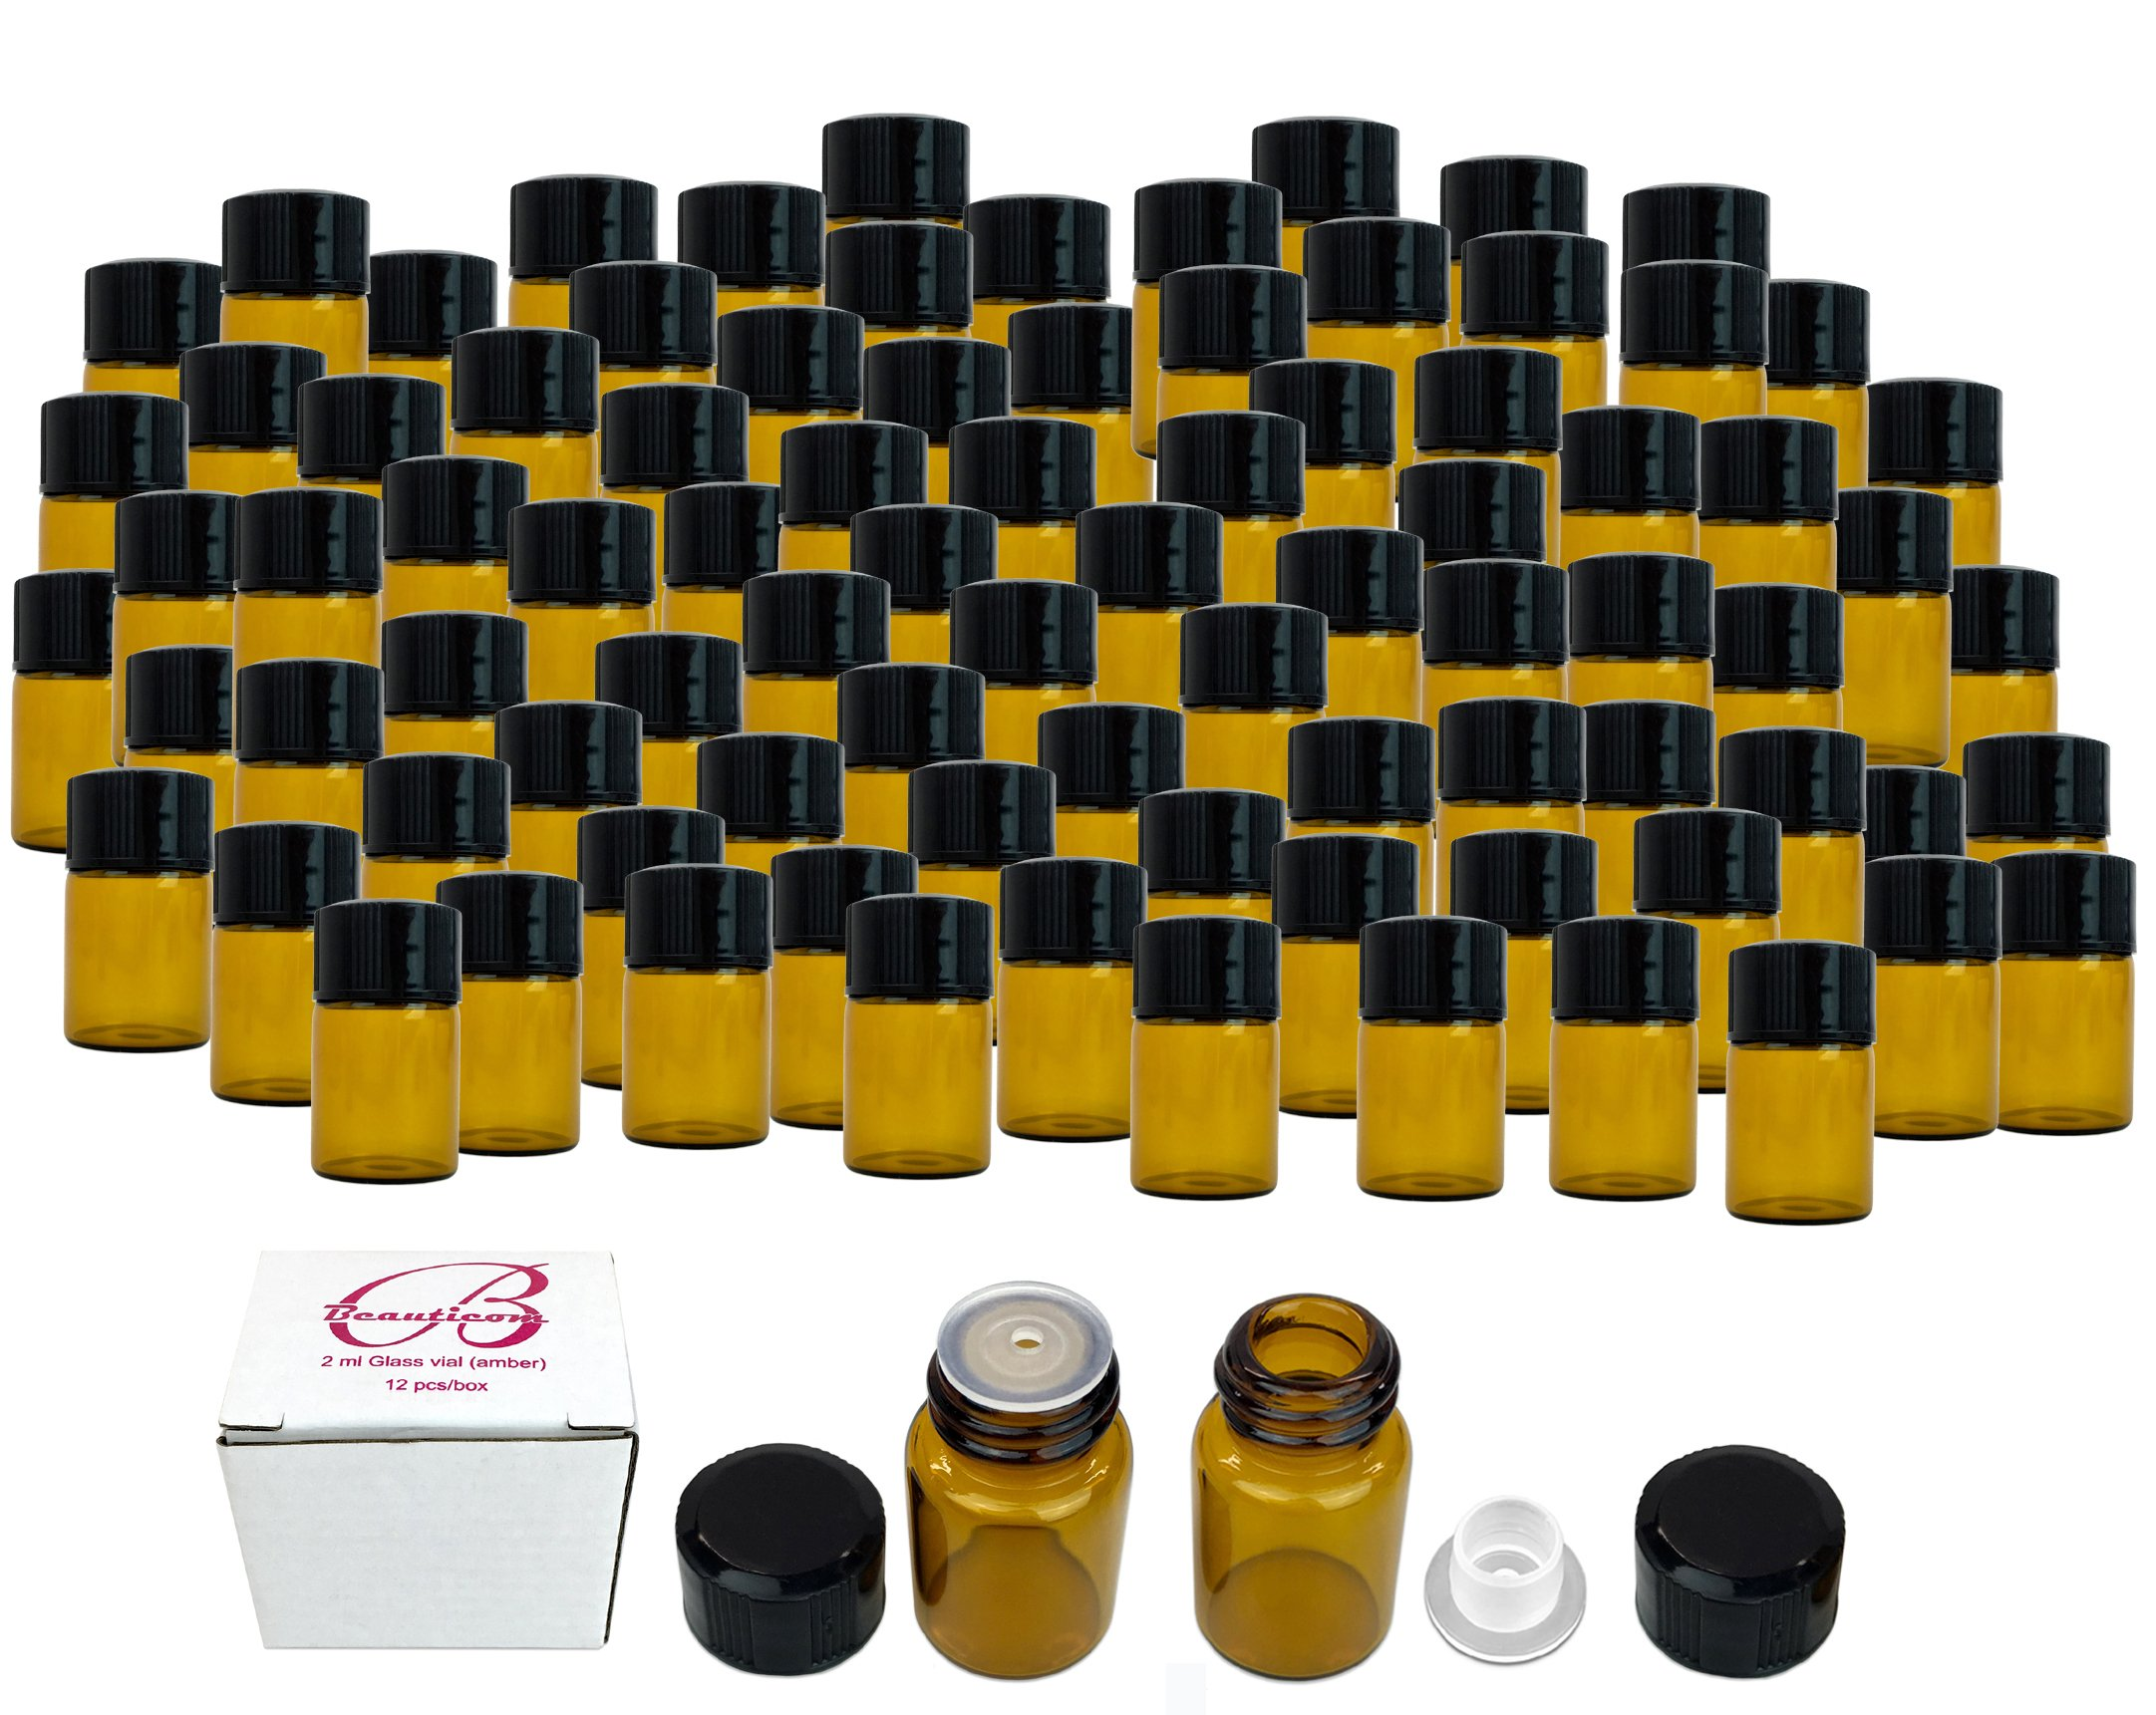 72 Packs Beauticom 2ML Amber Glass Vial for Essential Oils, Aromatherapy, Fragrance, Serums, Spritzes, with Orifice Reducer and Dropper Top